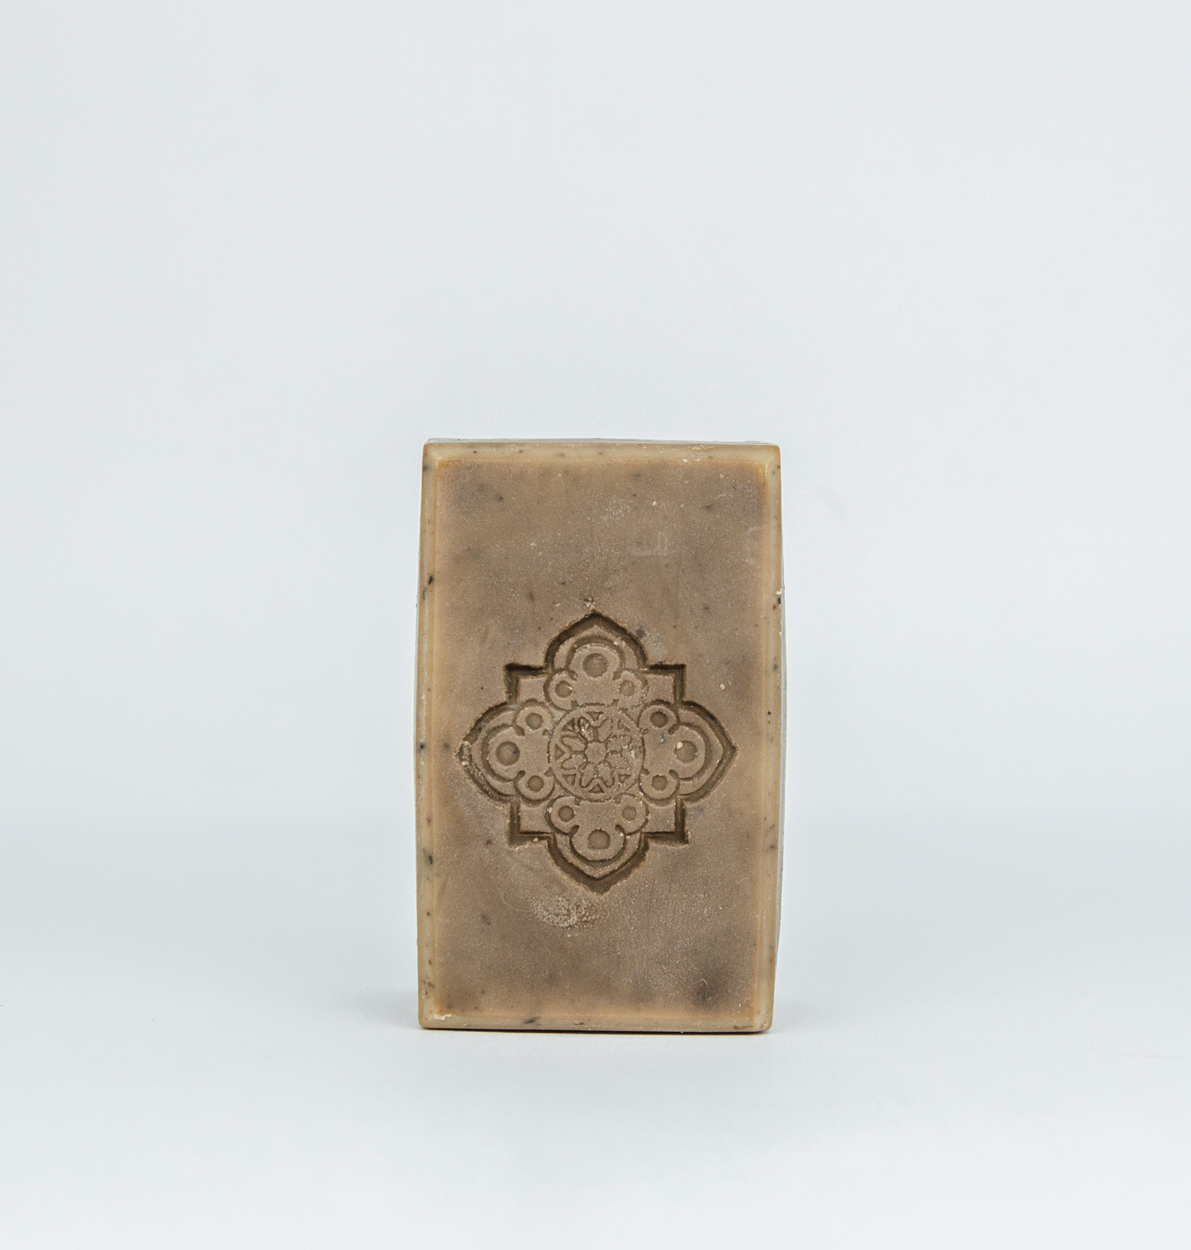 Moroccan mint olive oil soap 100% natural product